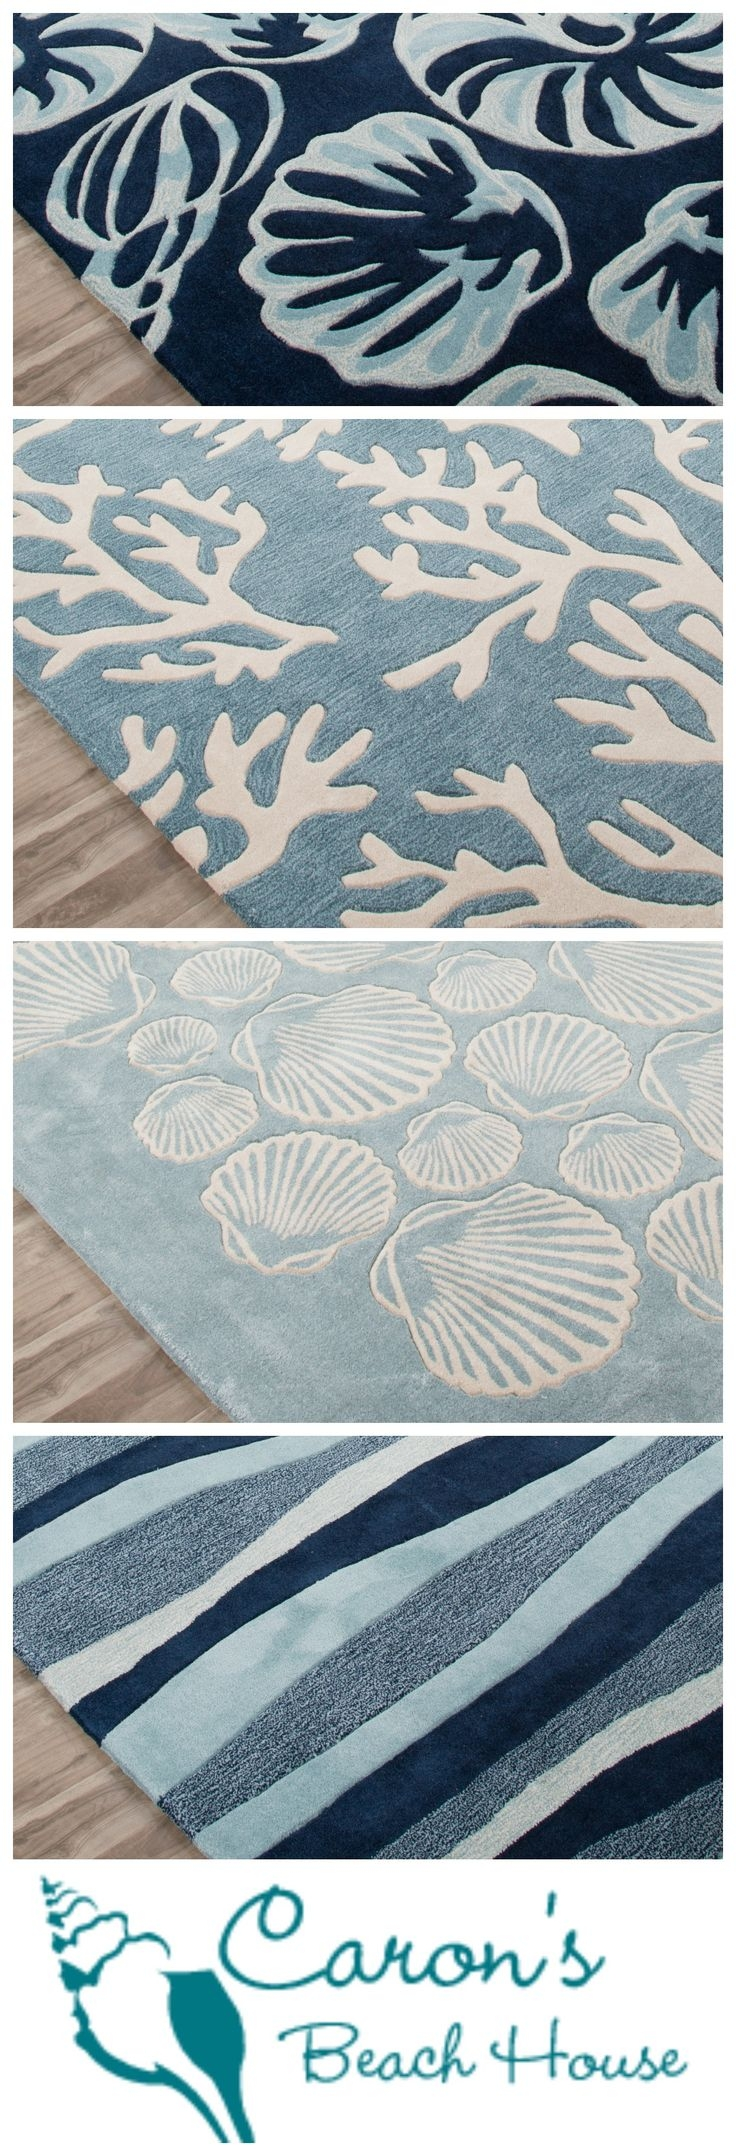 Best 20 Coastal Rugs Ideas On Pinterest Coastal Inspired Rugs Inside Seaside Rugs (View 7 of 15)